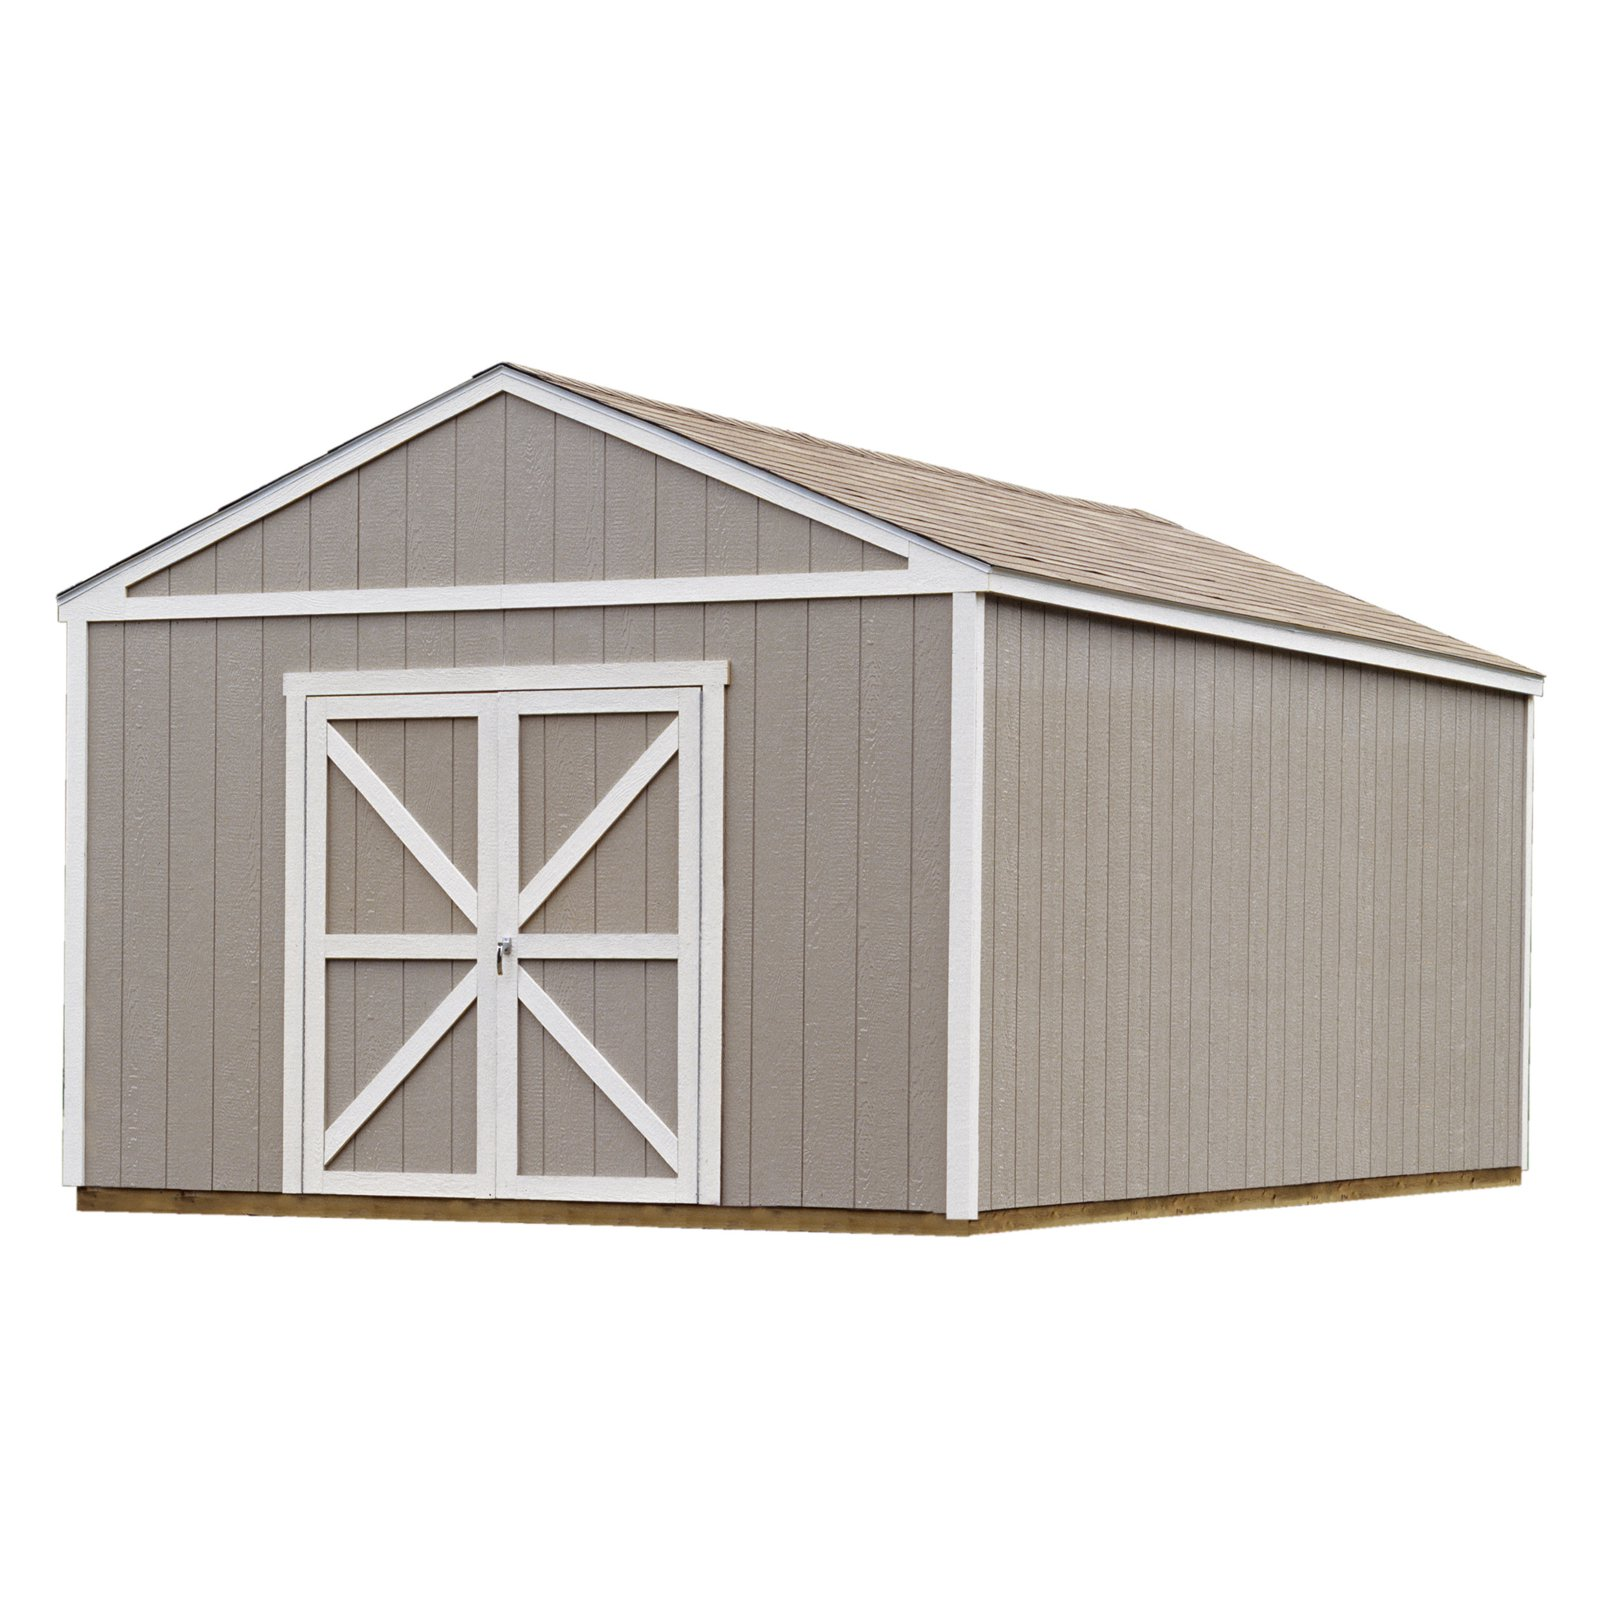 Handy Home Columbia Storage Shed - 12 x 16 ft.